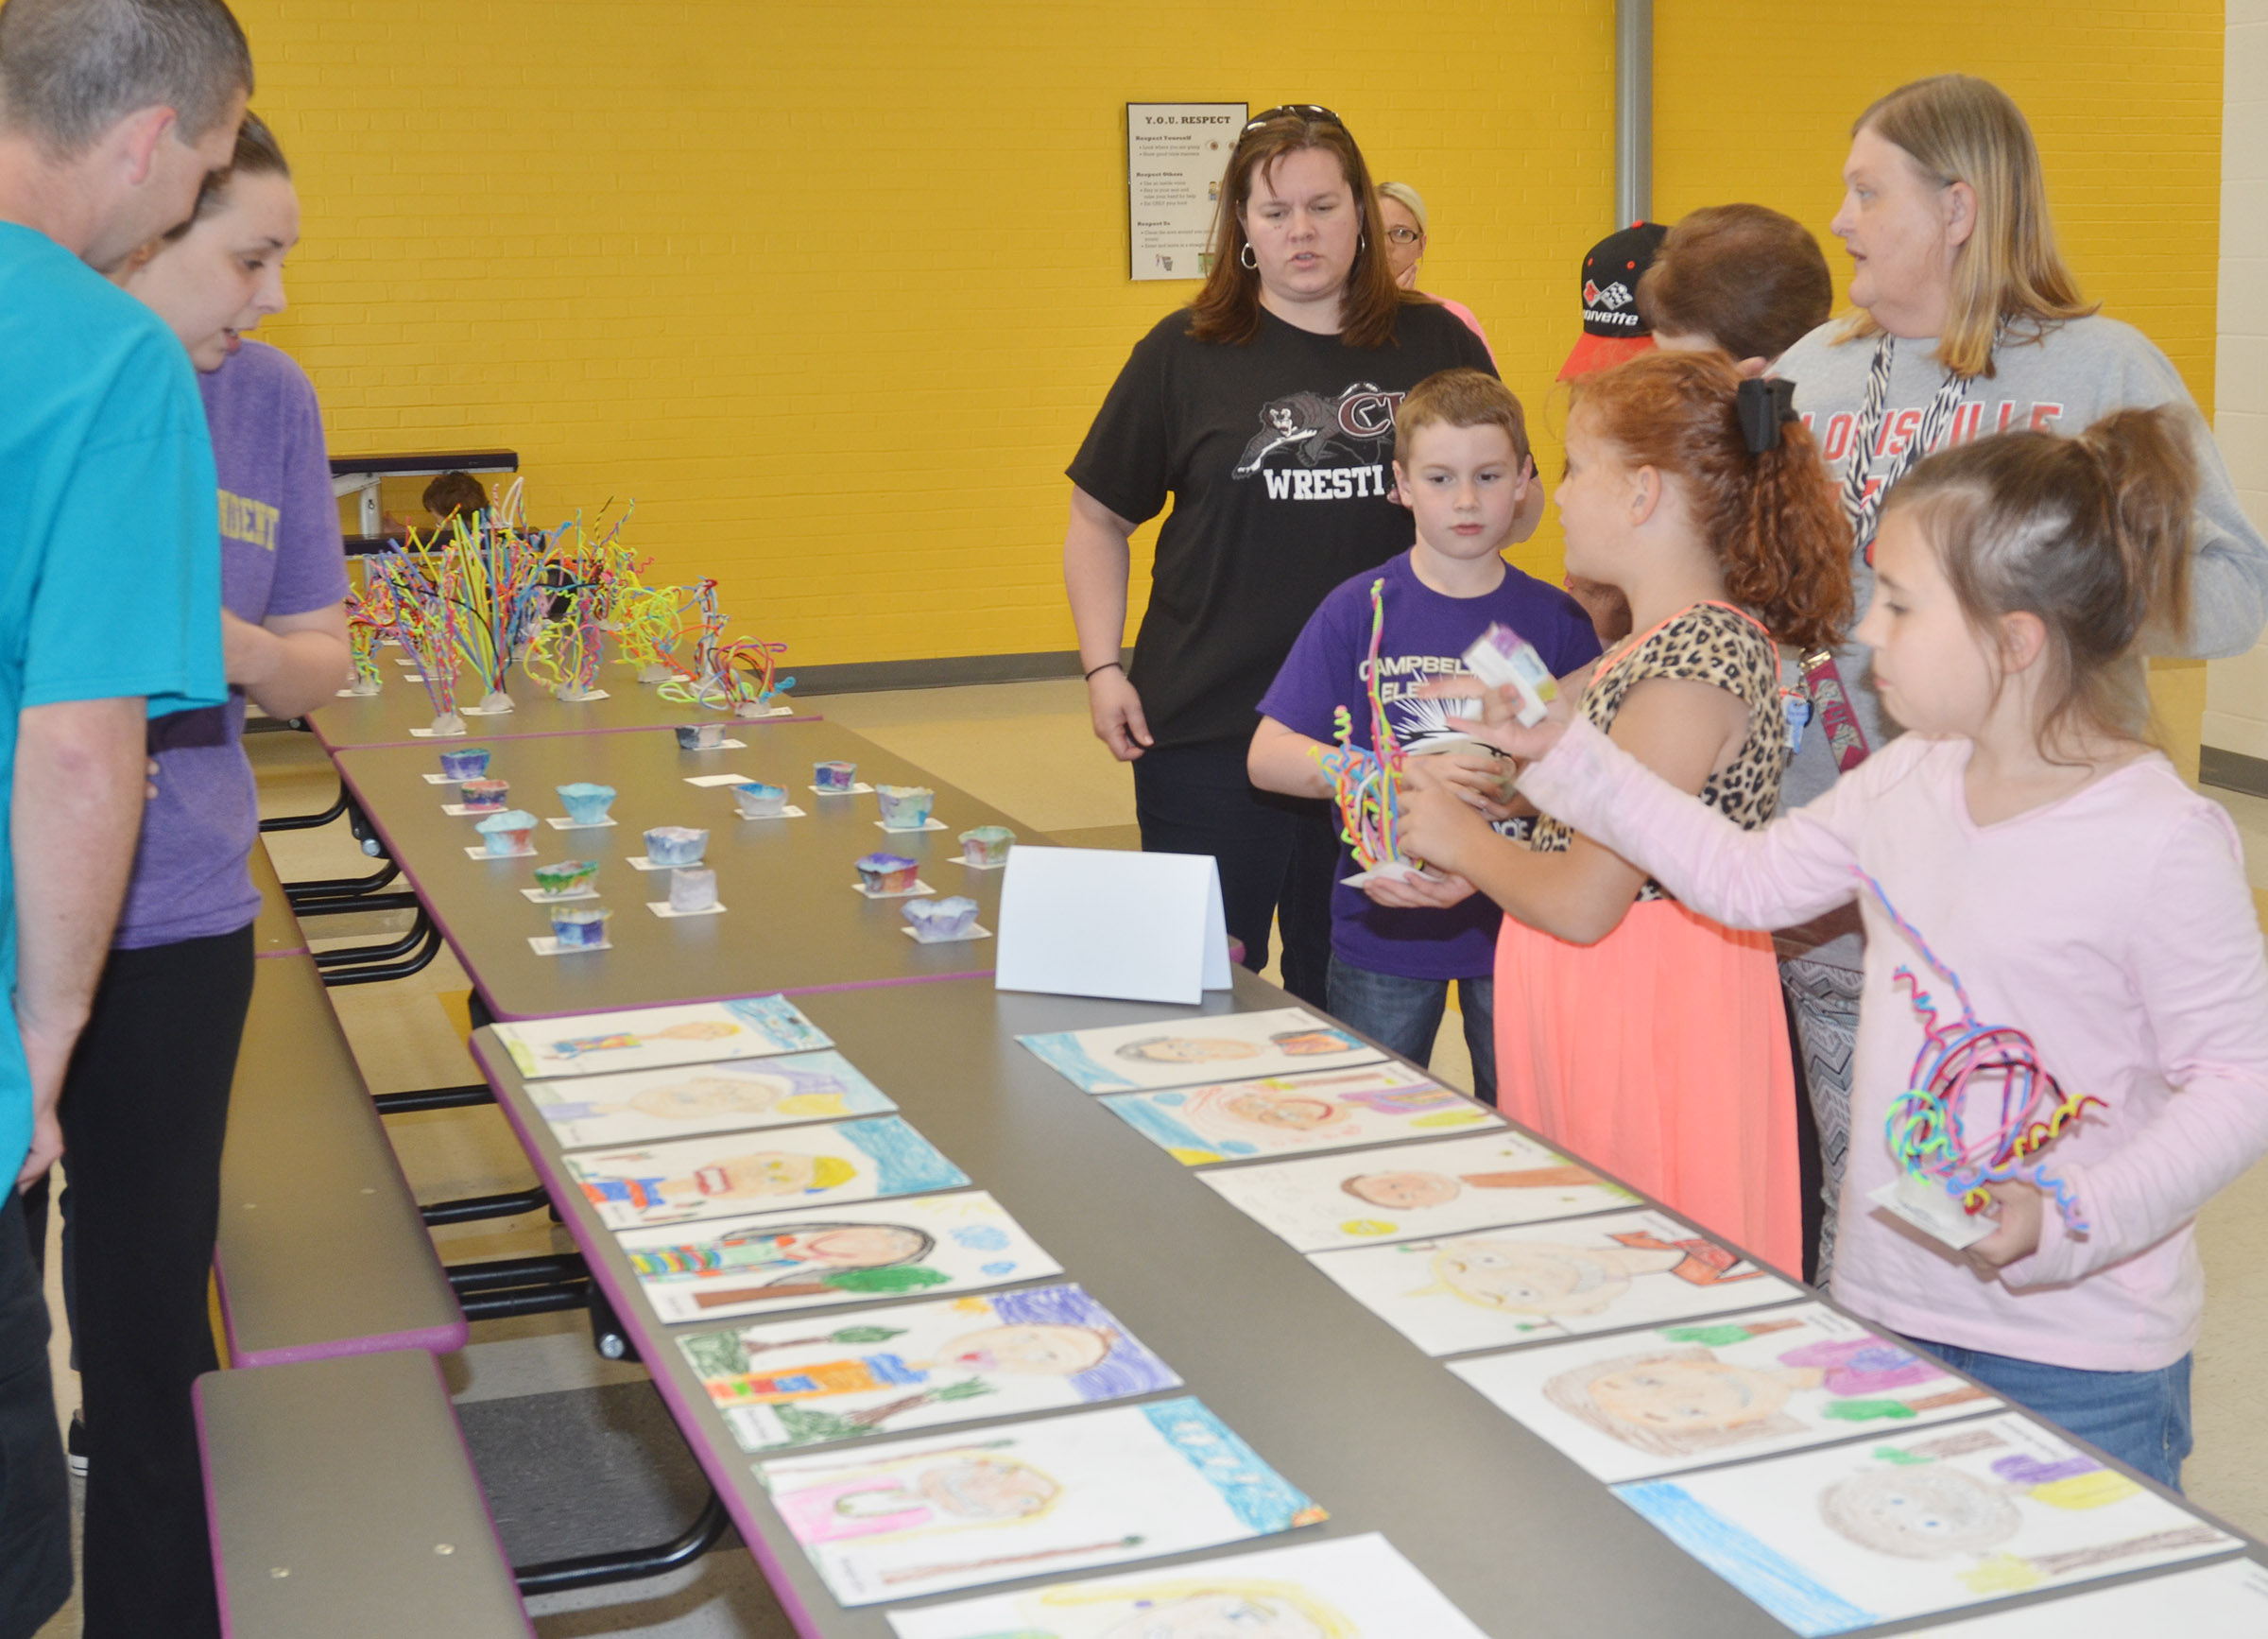 CES second-graders show the artwork they made in Adrienne Hash's class.